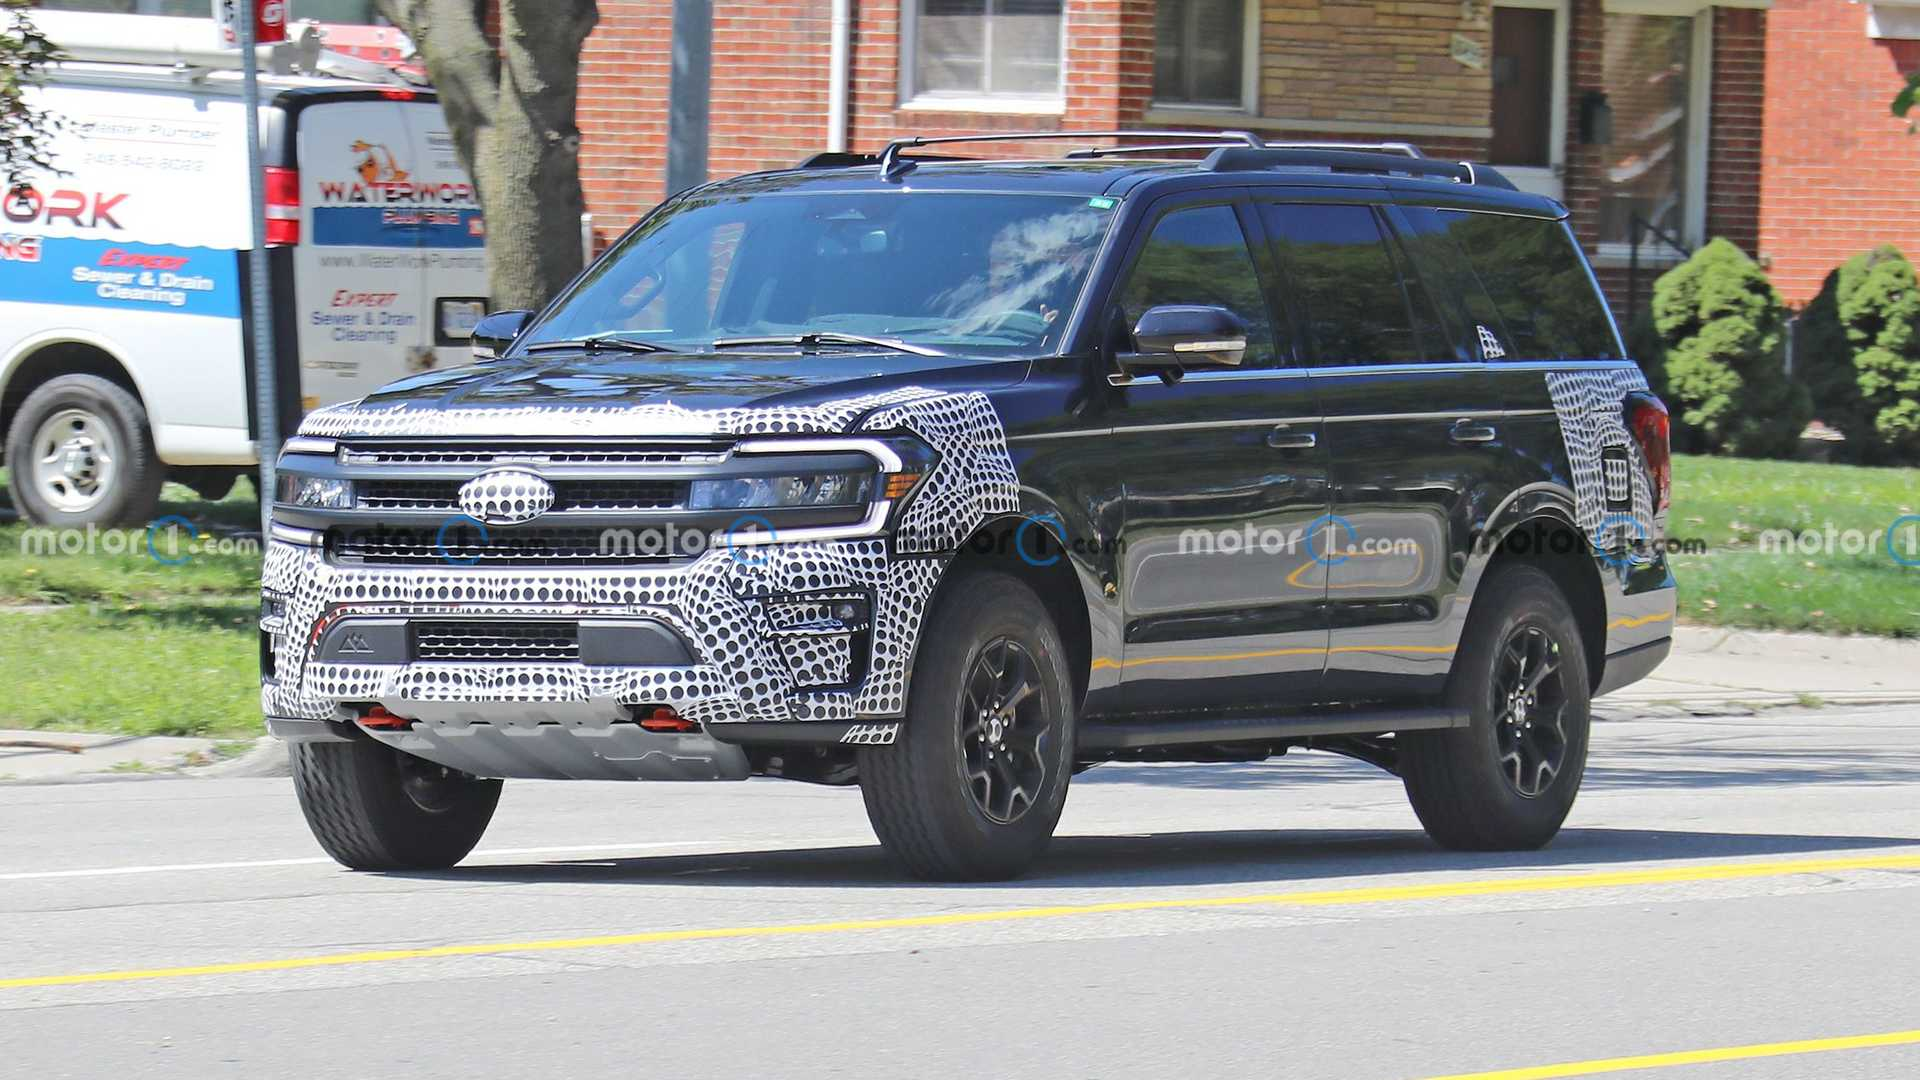 https://cdn.motor1.com/images/mgl/PzNEL/s6/2022-ford-expedition-timberline-new-spy-photo.jpg